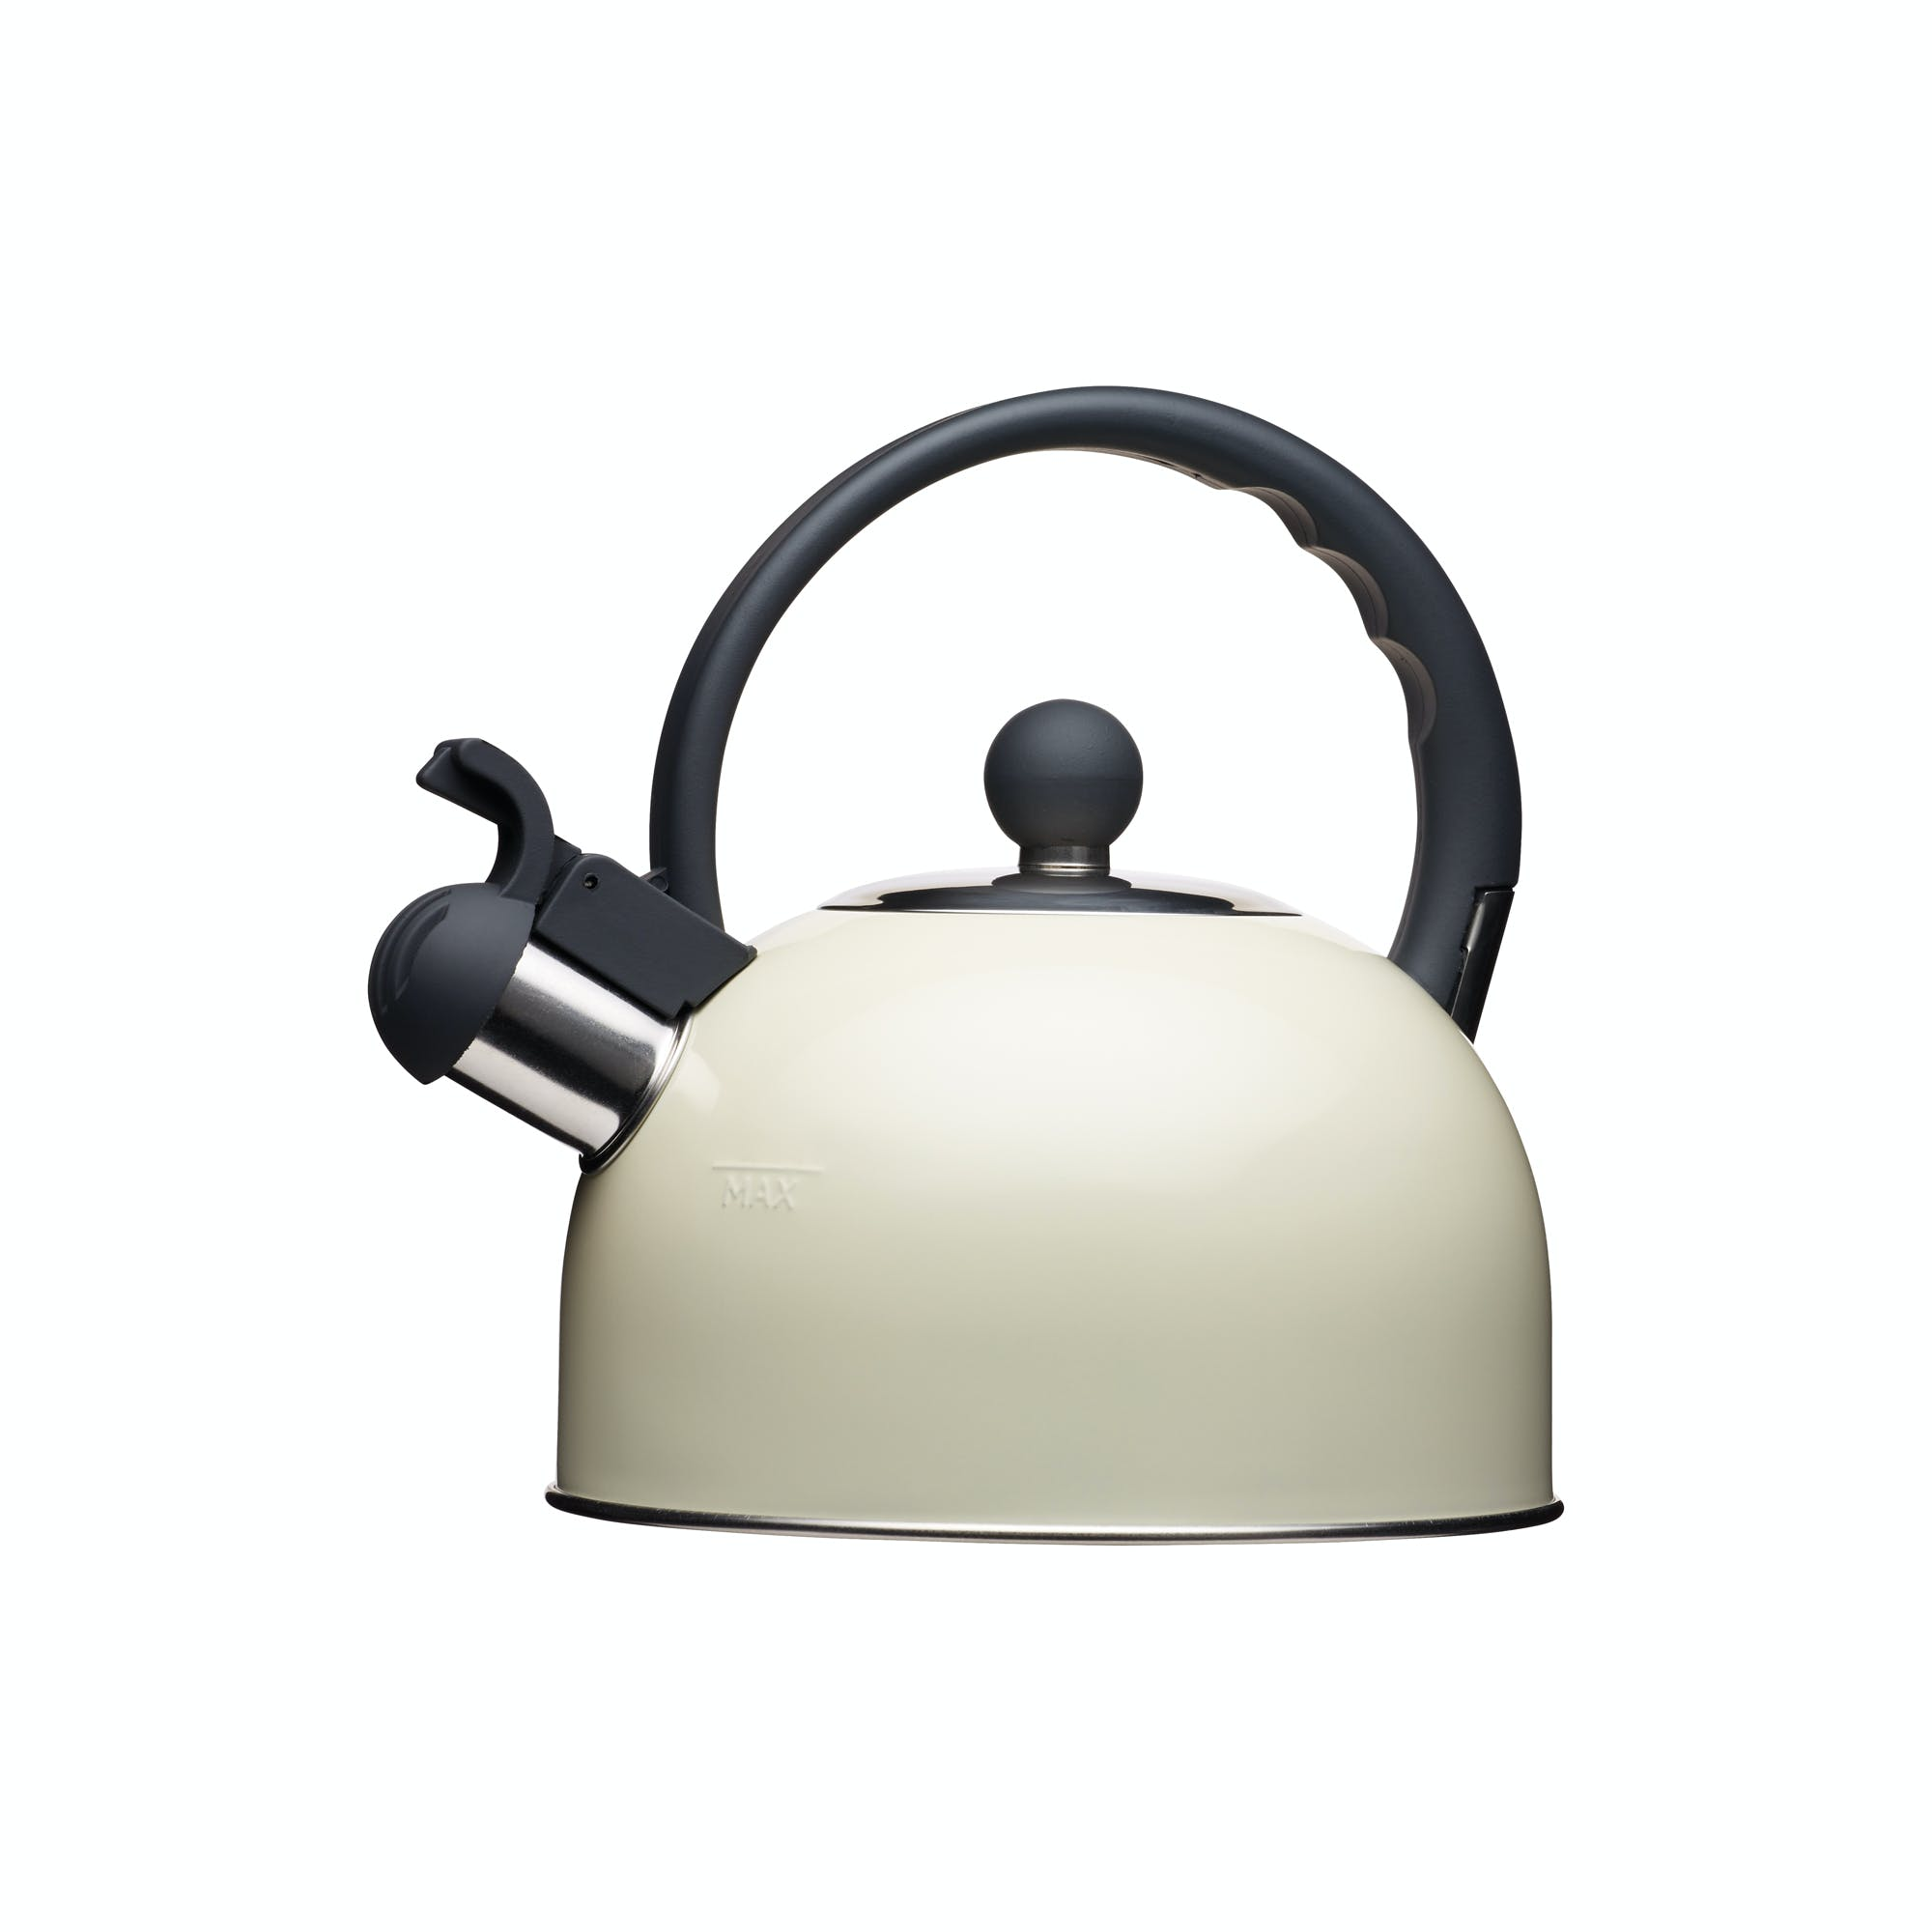 Kitchencraft Cream 1.4L Whistling Kettle